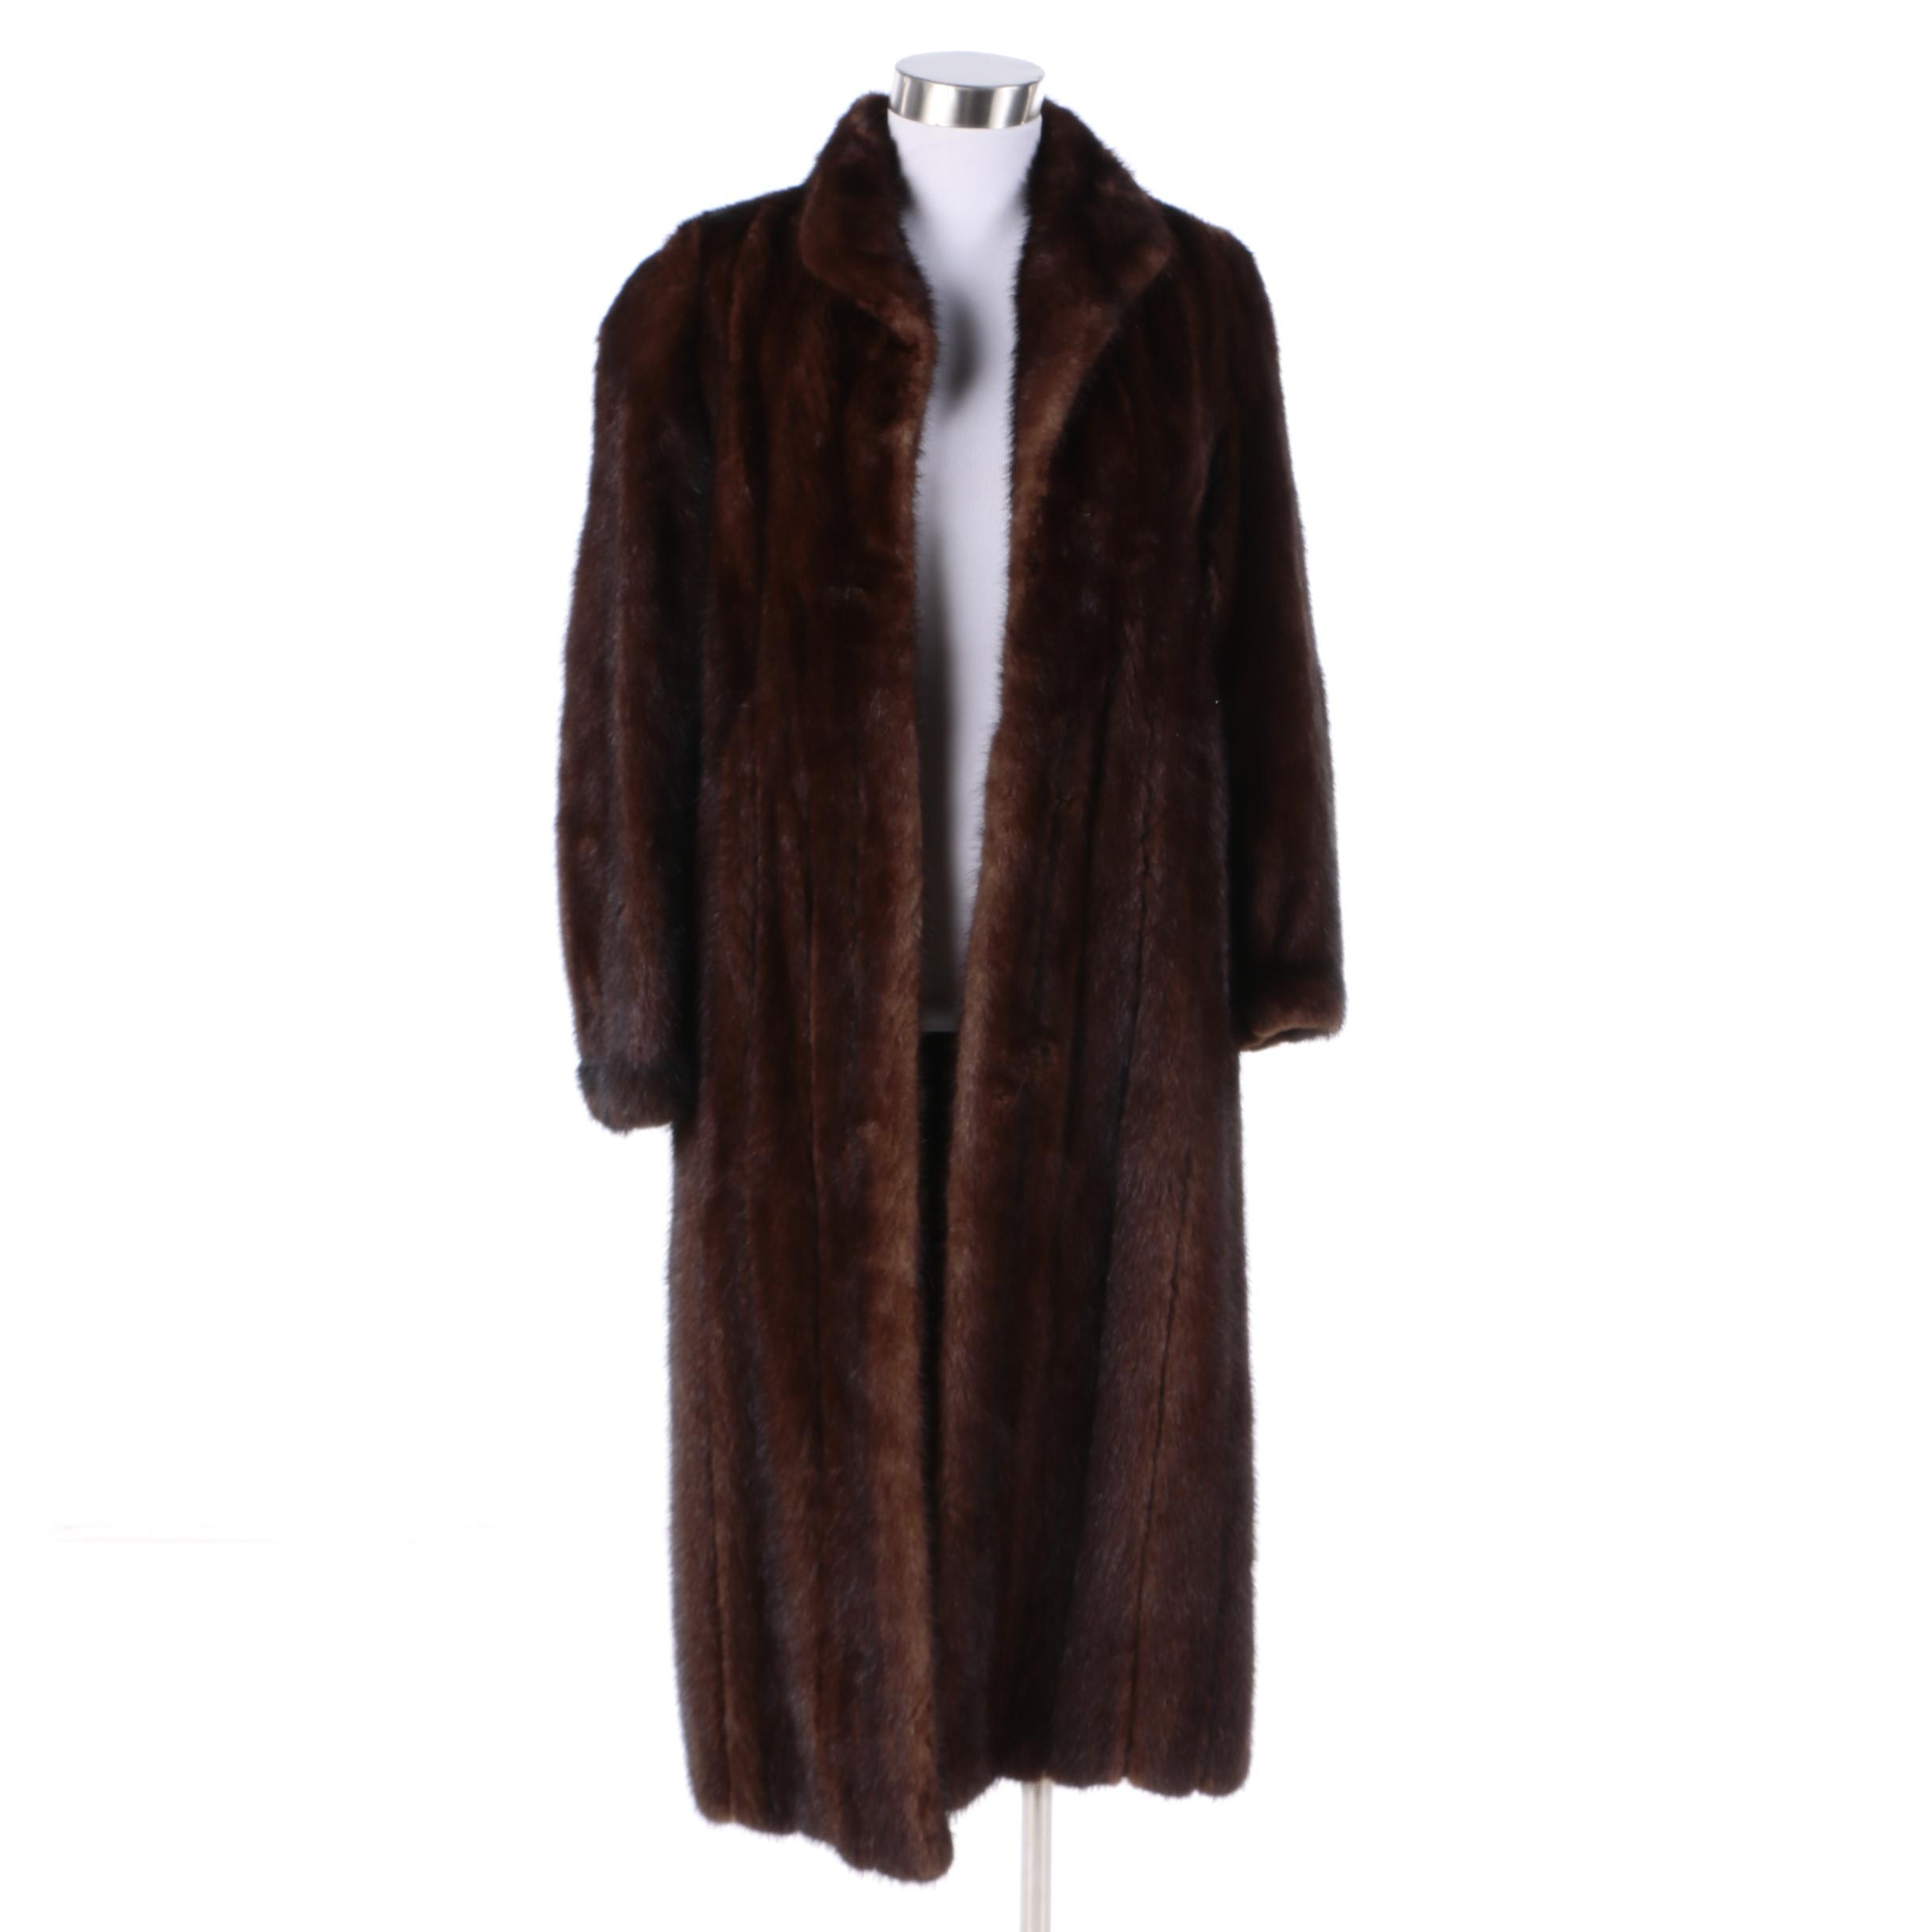 Vintage Dark Mahogany Brown Mink Fur Coat